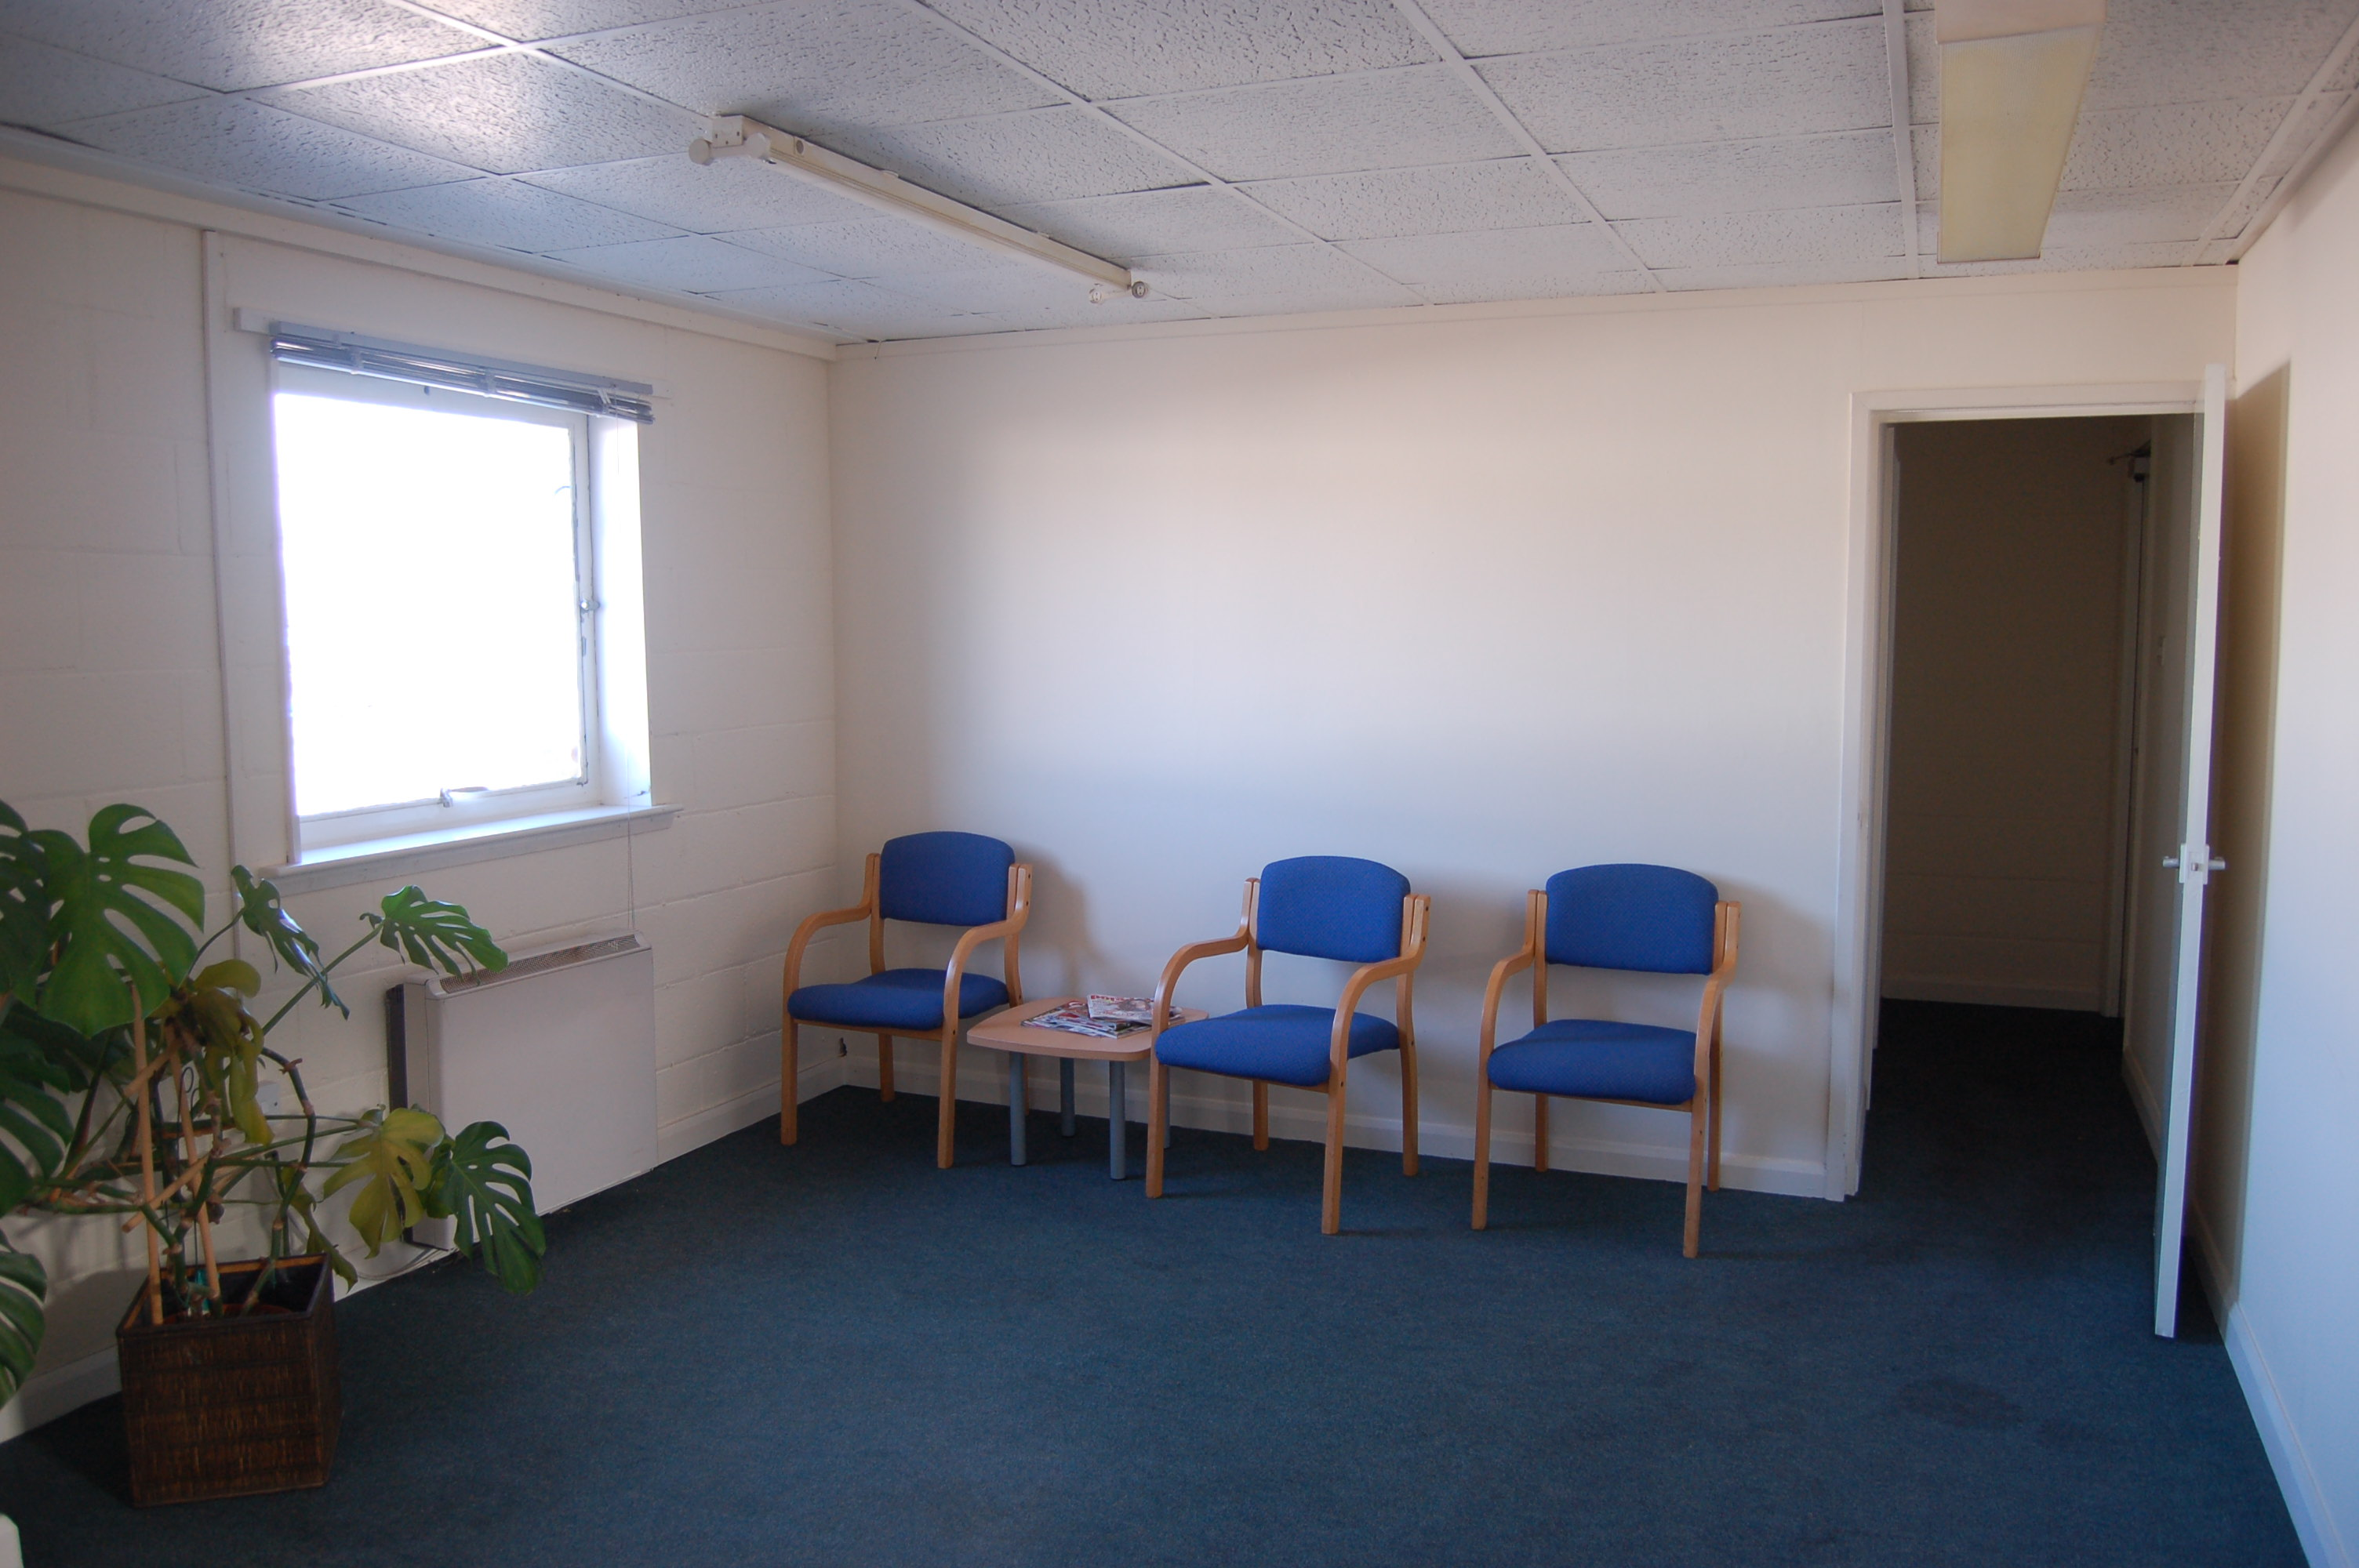 Client's waiting area